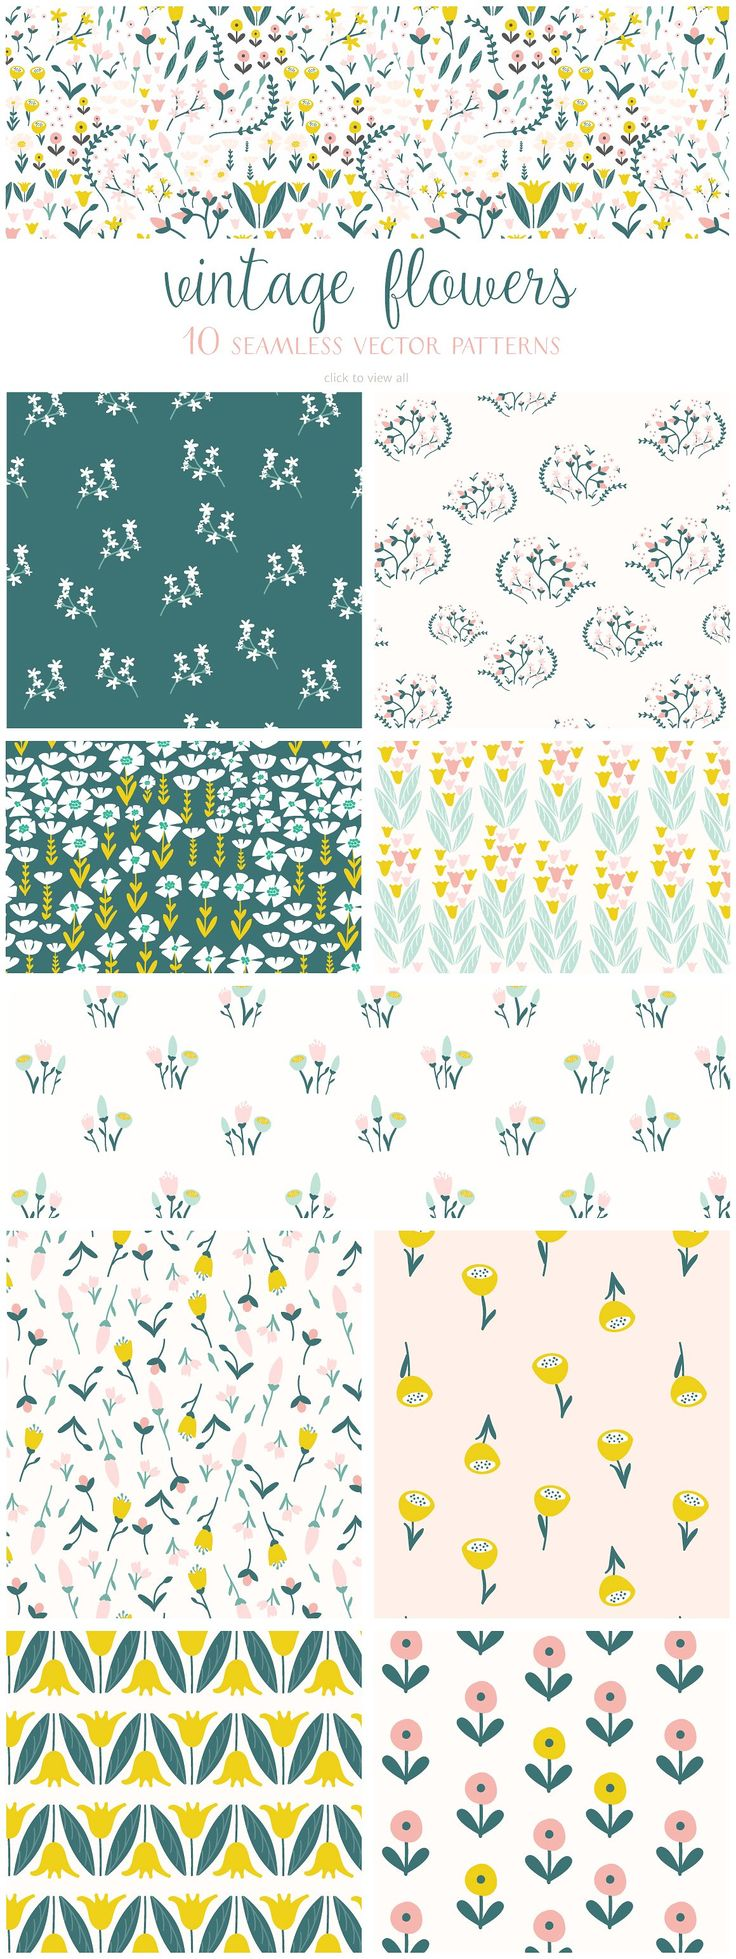 Vintage Flowers Pattern Collection by Elan Creative Co. on @creativemarket